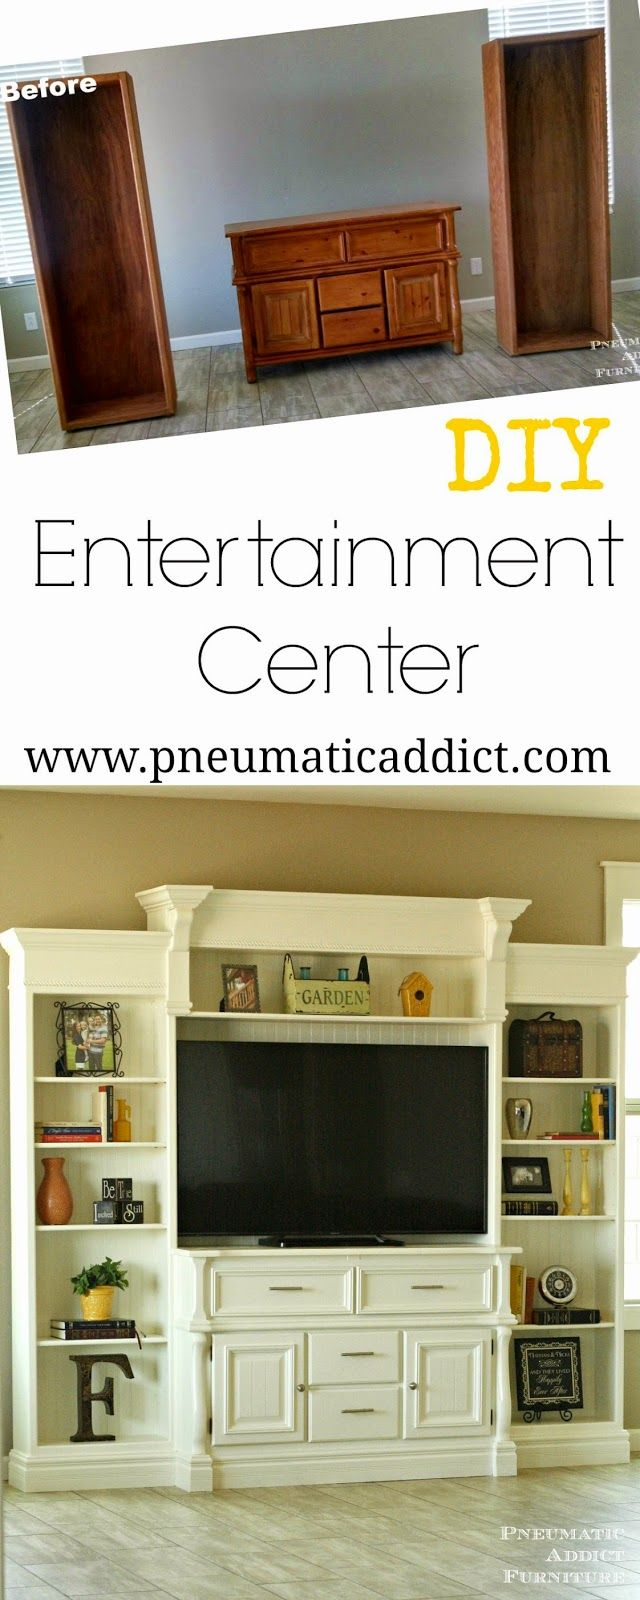 How to make your own DIY Entertainment Center from a few thrift store finds.